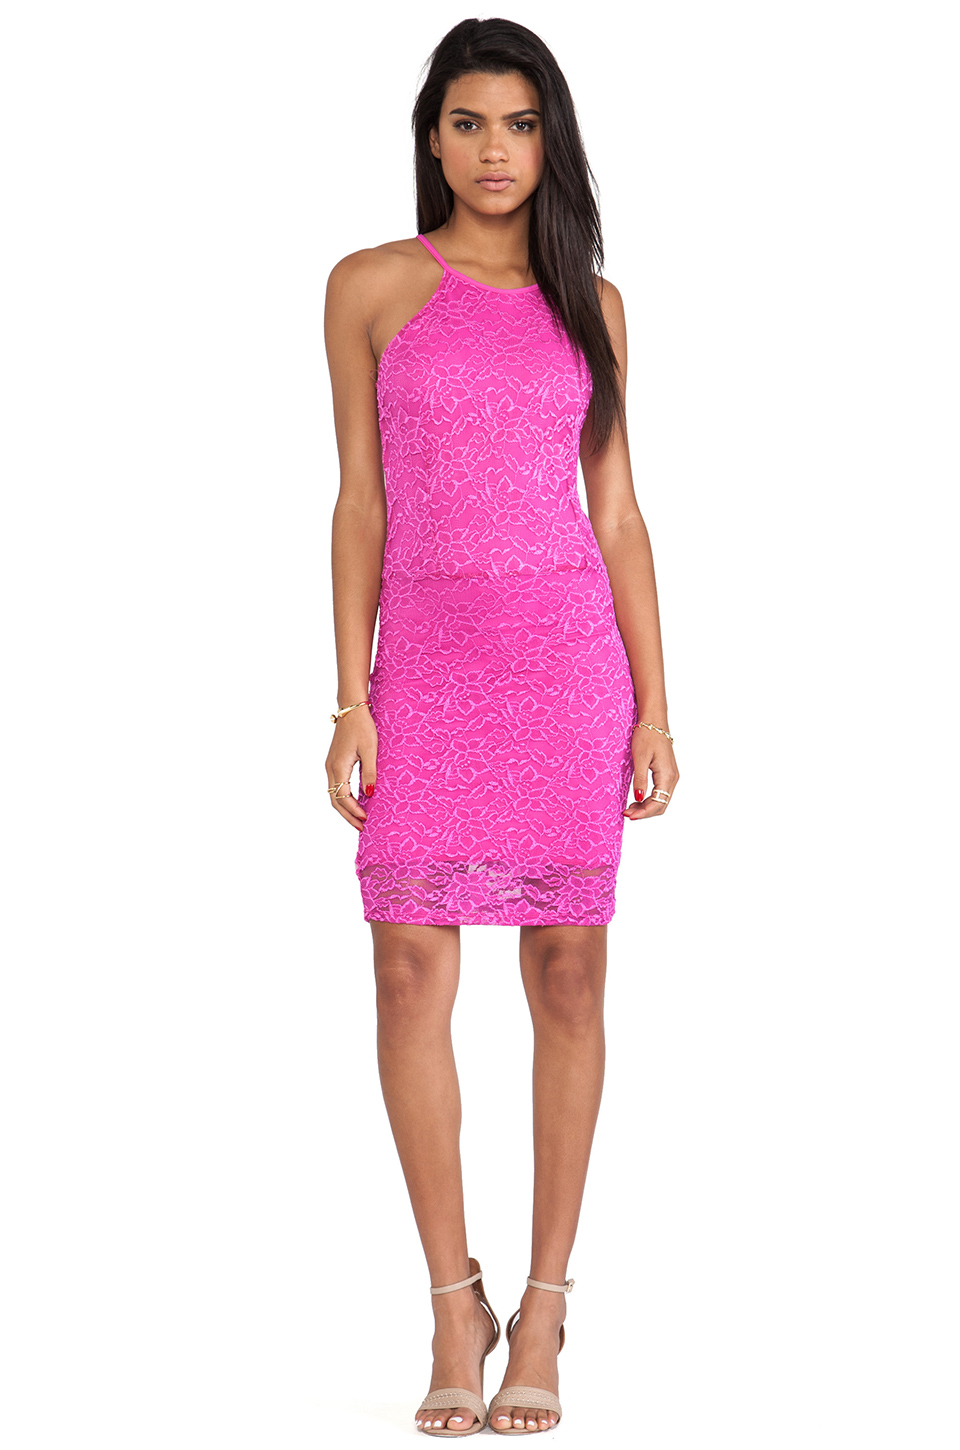 Donna Mizani Passion Lace Racer Dress in Fuchsia